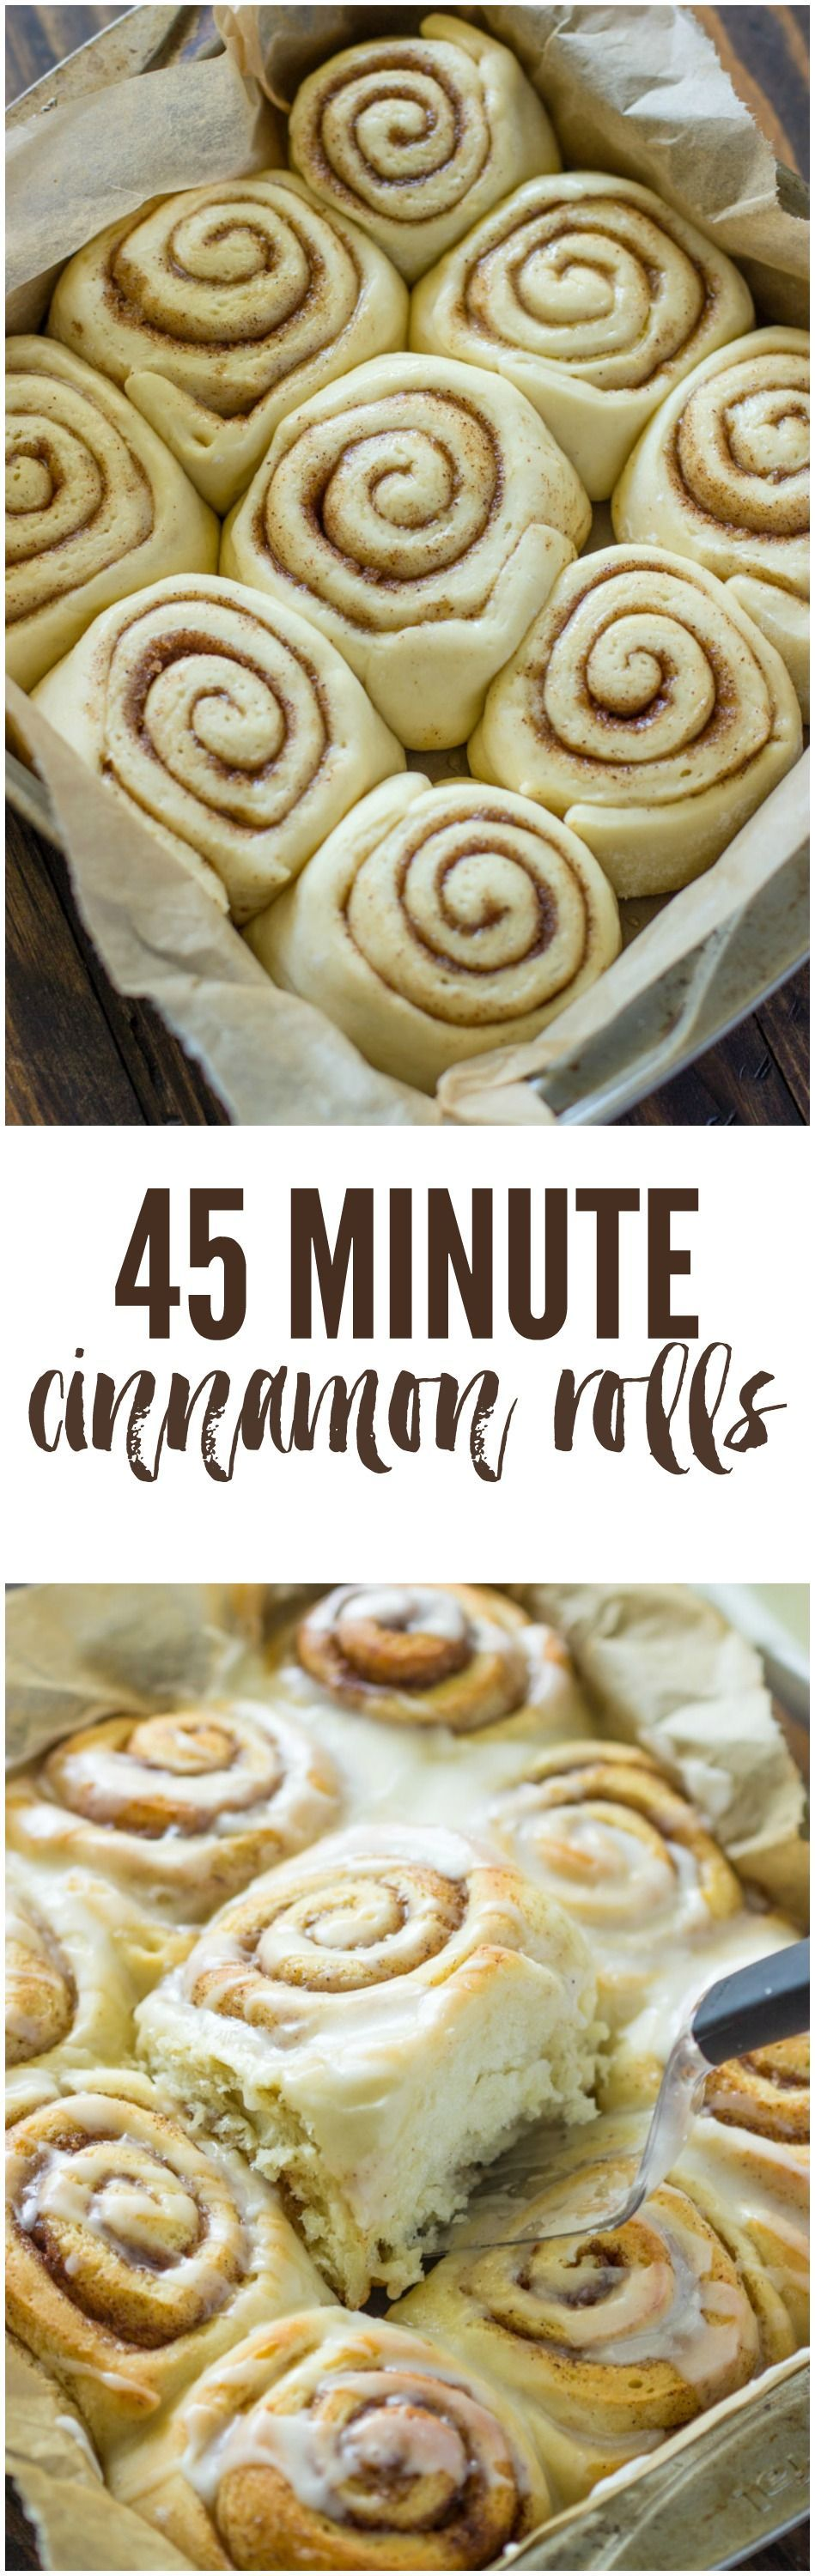 and soft cinnamon rolls taste even better than Cinnabon and are ready in just 45 minutes!